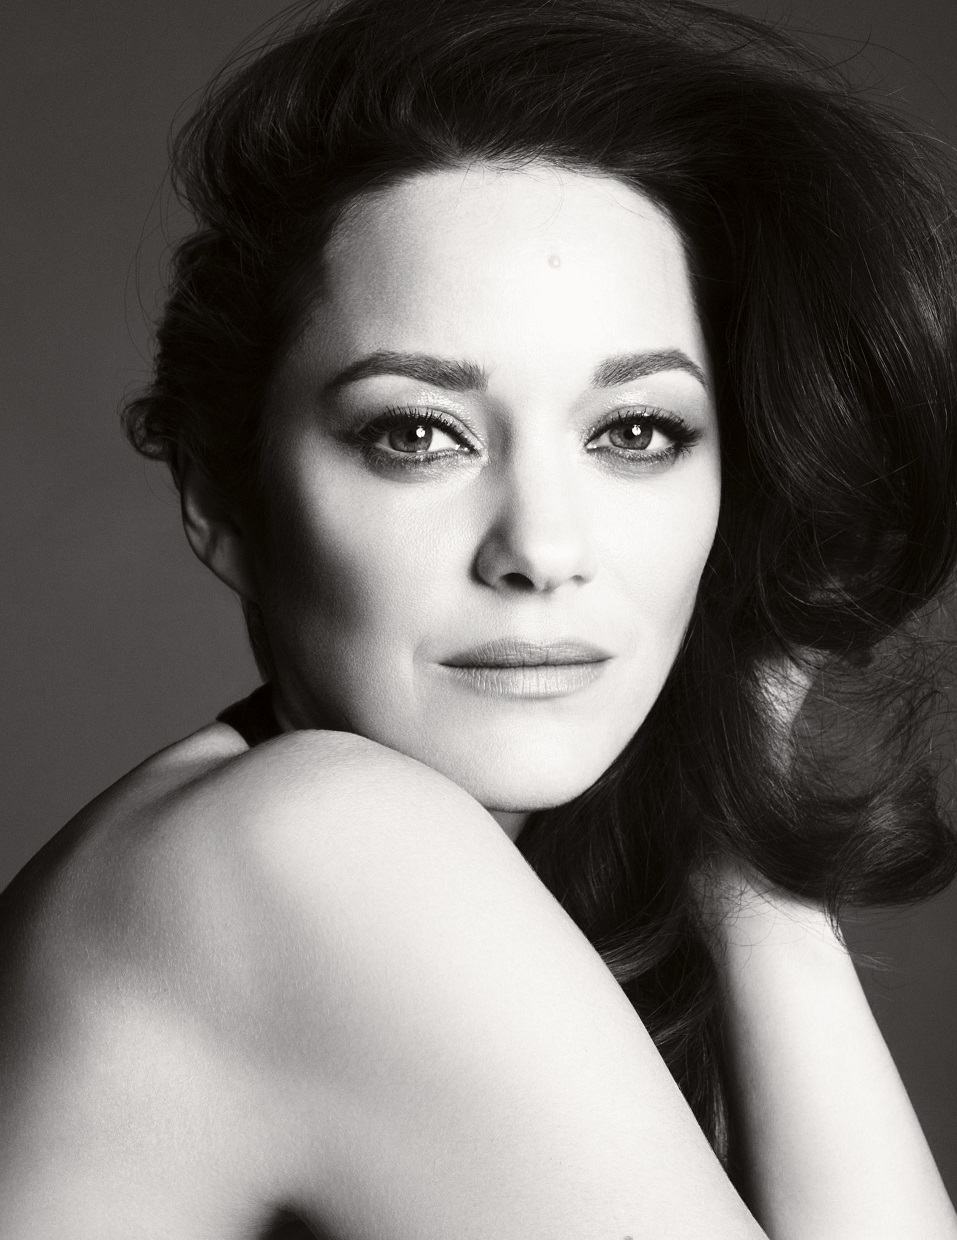 Marion-Cotillard-Is-the-New-Face-for-Chanel-No.5